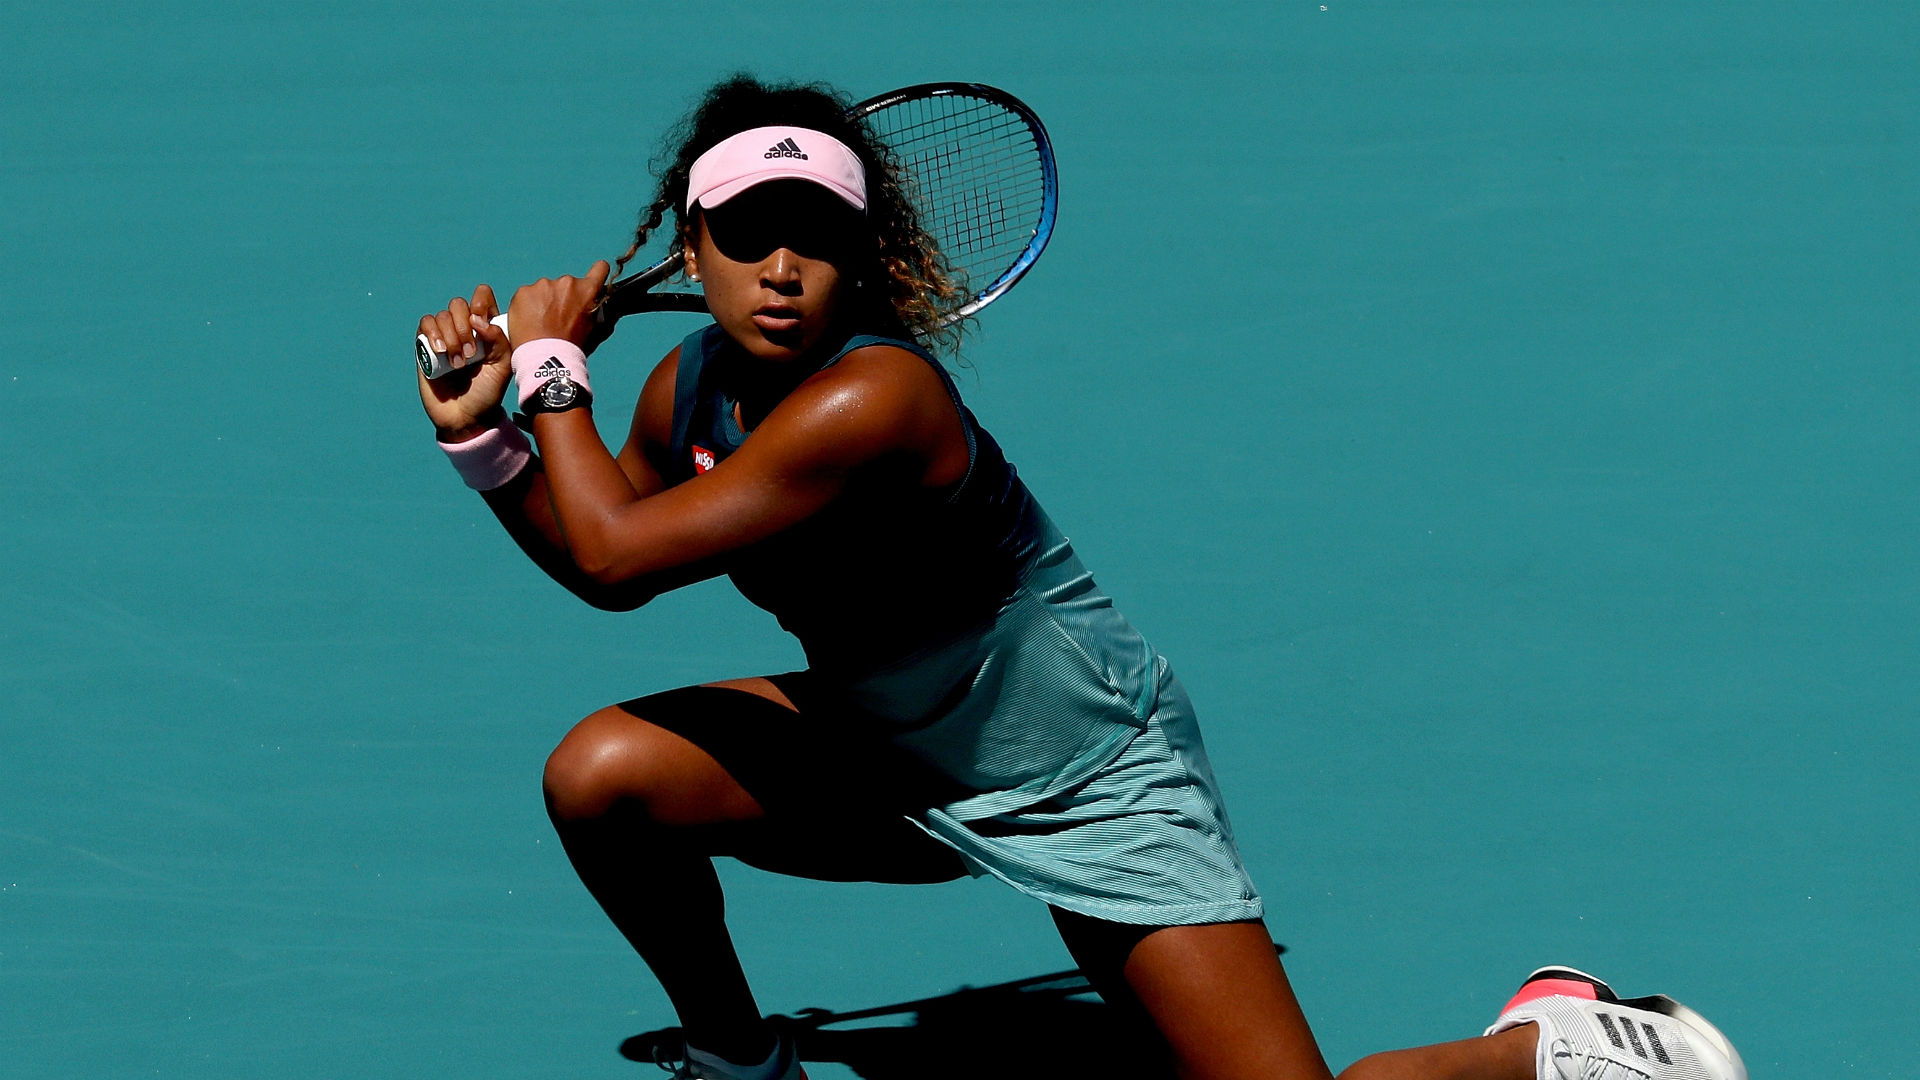 Top seed Osaka dumped out of Miami Open by Hsieh